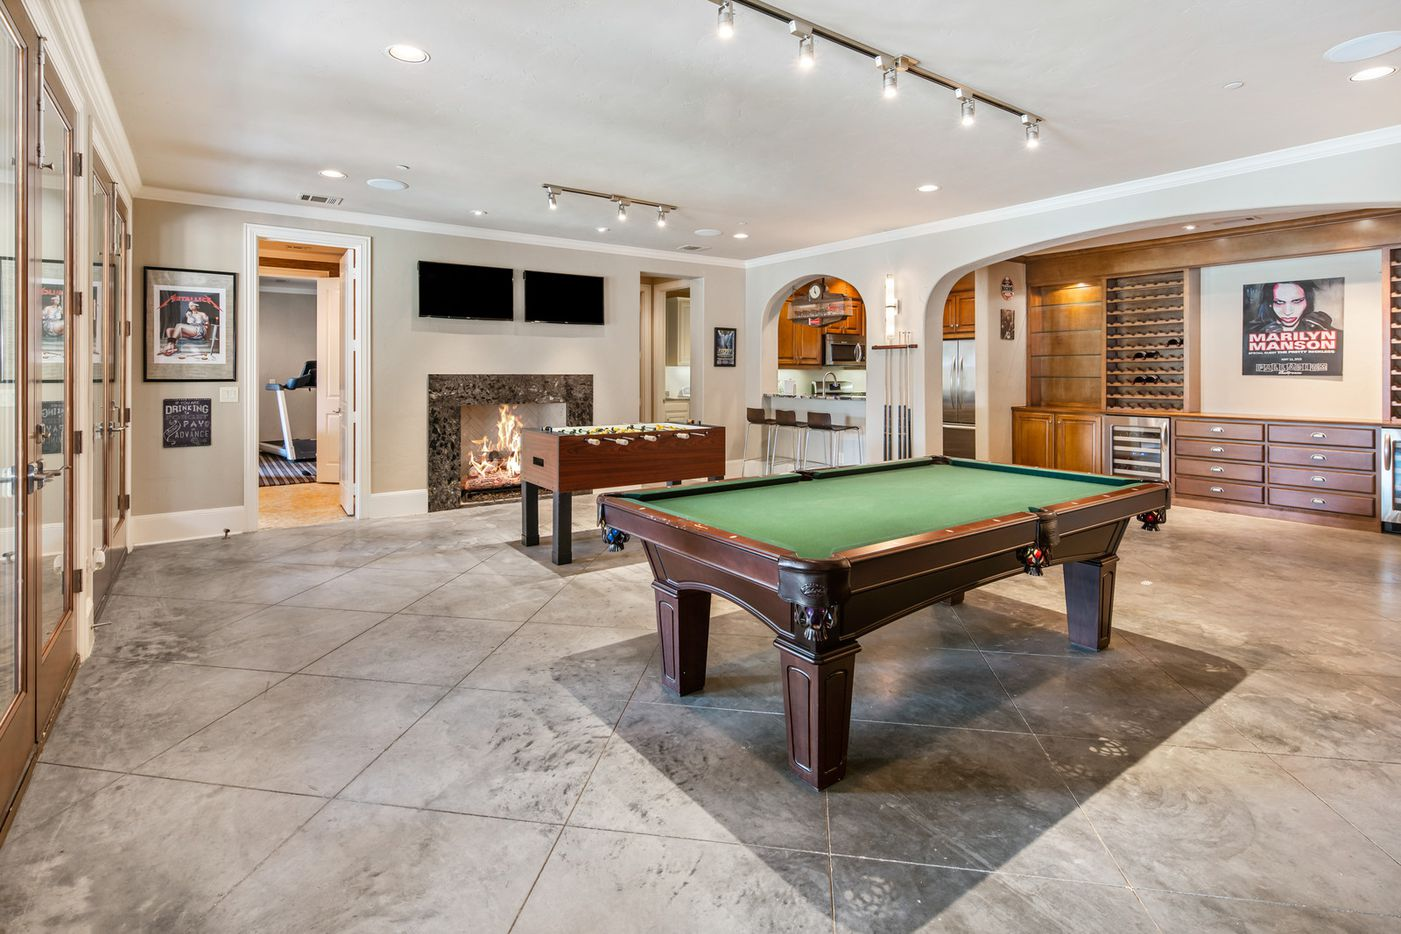 The basement at 3 Stonebriar Way in Frisco, TX.